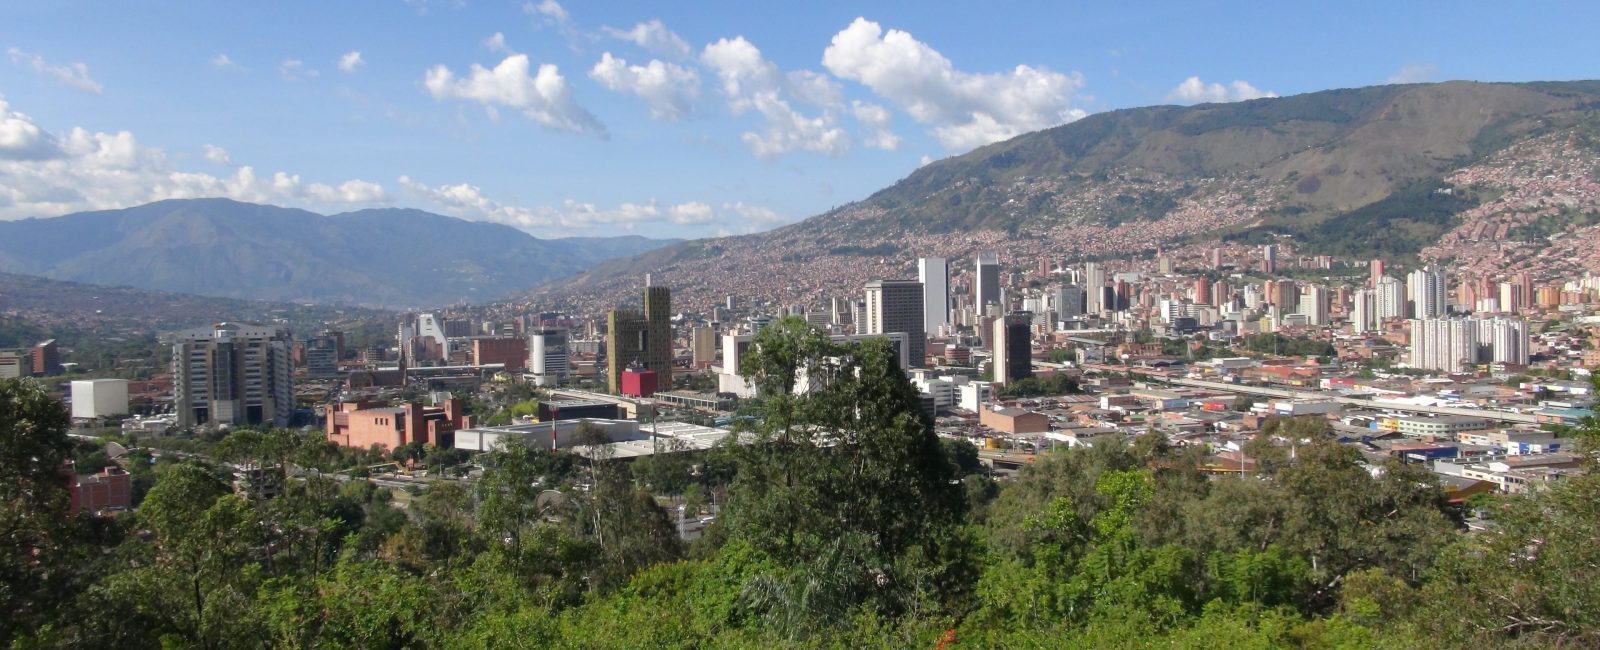 Medellin, Colombia (Photo credit: Jared Wade)